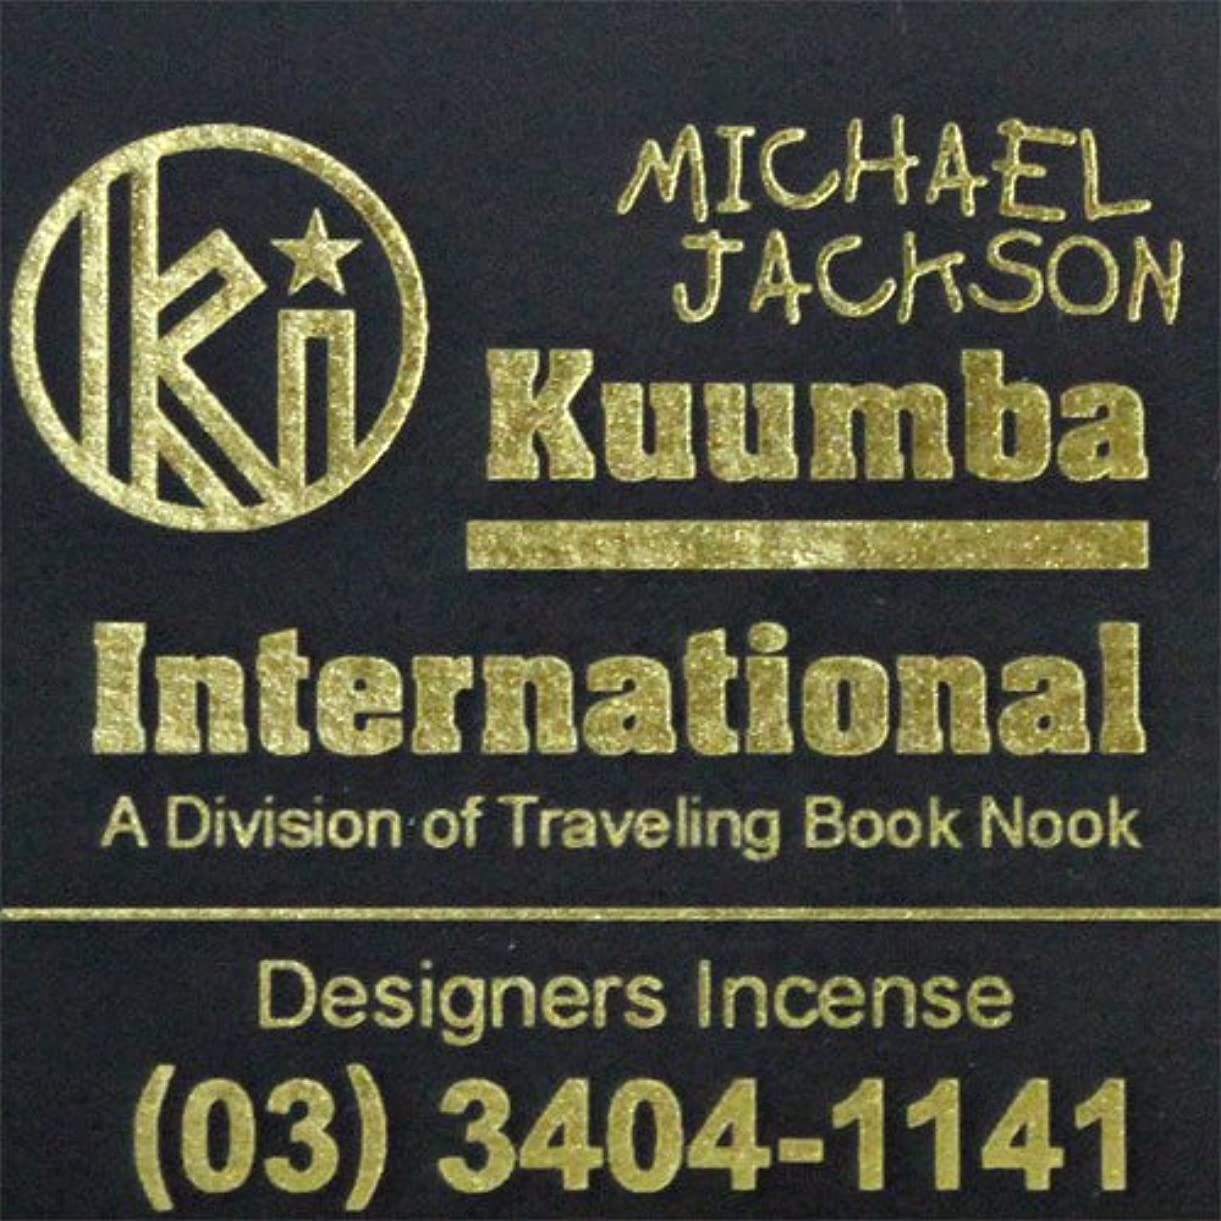 励起なめるベース(クンバ) KUUMBA『incense』(MICHAEL JACKSON) (Regular size)